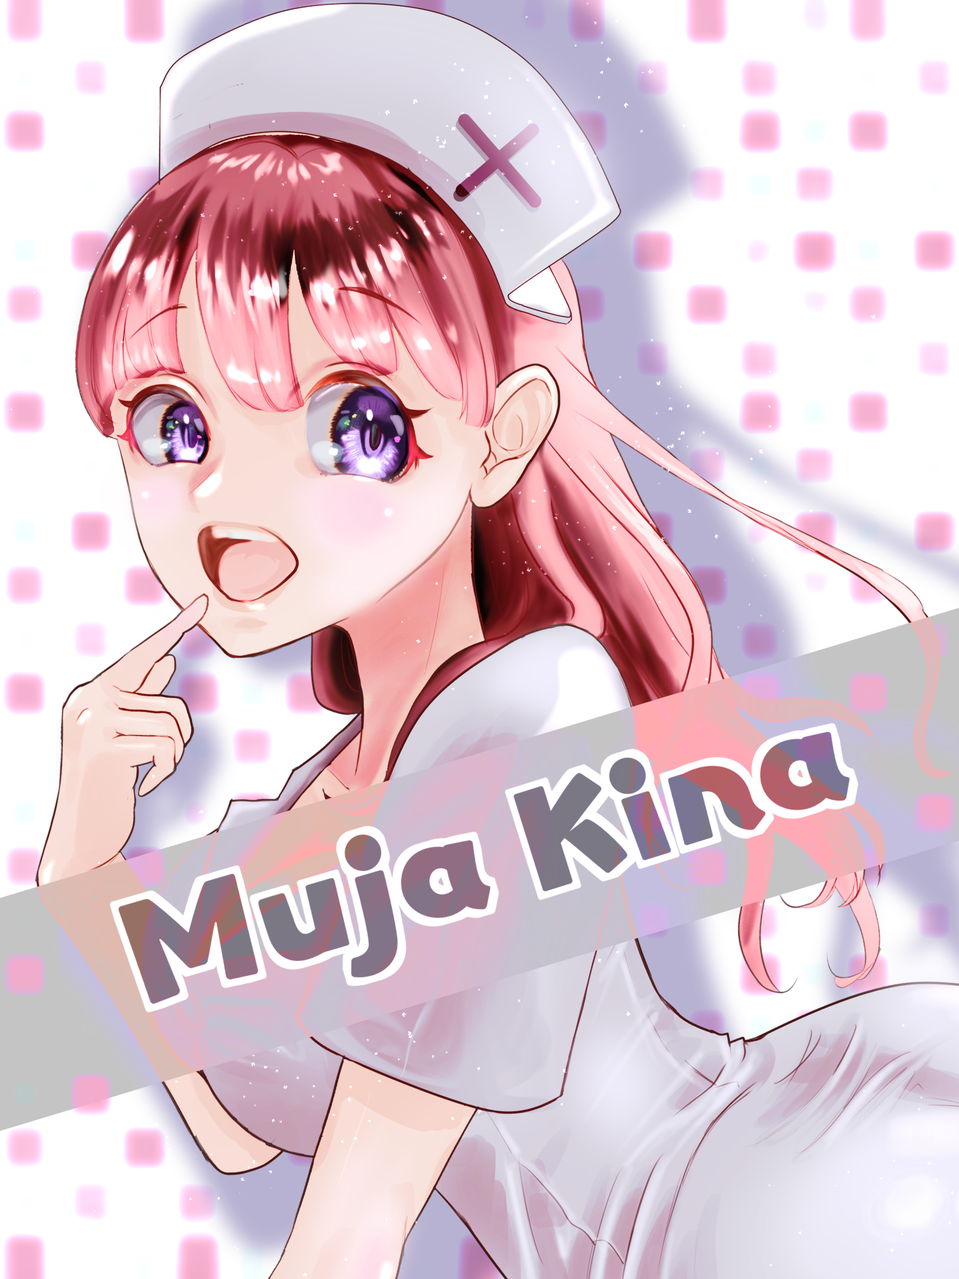 Muja Kina Illust of FJ YandereSimulatorFanArtContest kawaii girl MujaKina pinkhair fanart nurse